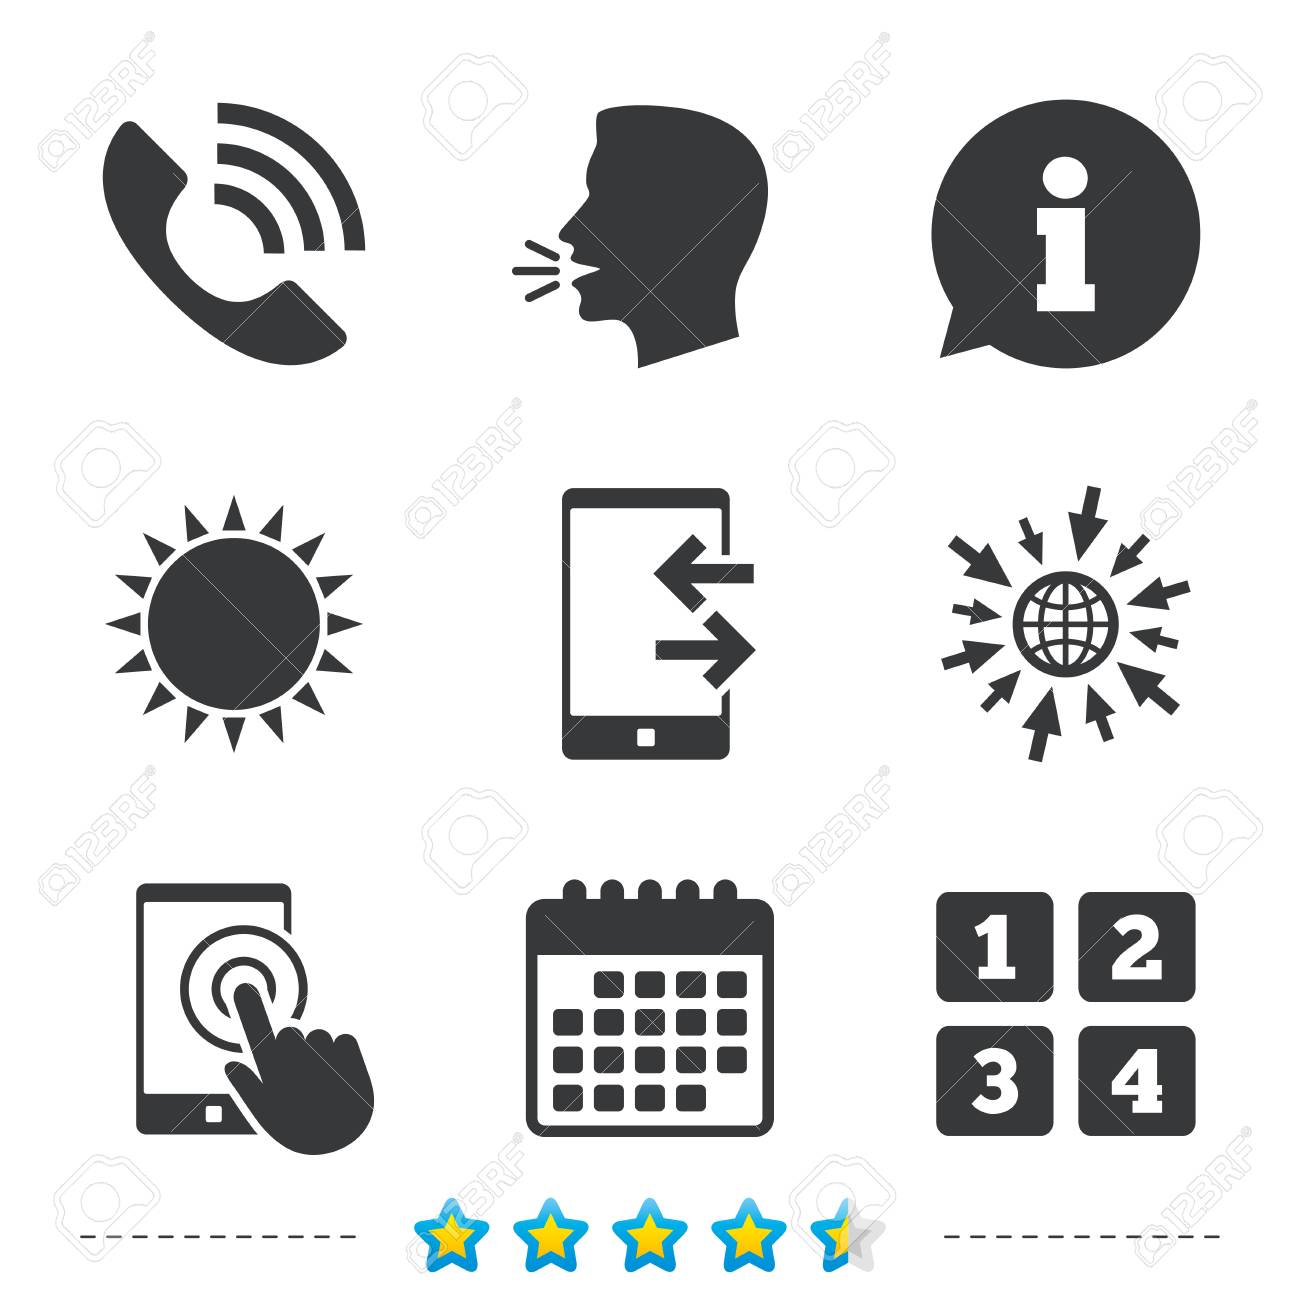 Ascii code for rupee symbol gallery symbol and sign ideas keyboard sun symbol gallery symbol and sign ideas phone icons touch screen smartphone sign call center biocorpaavc